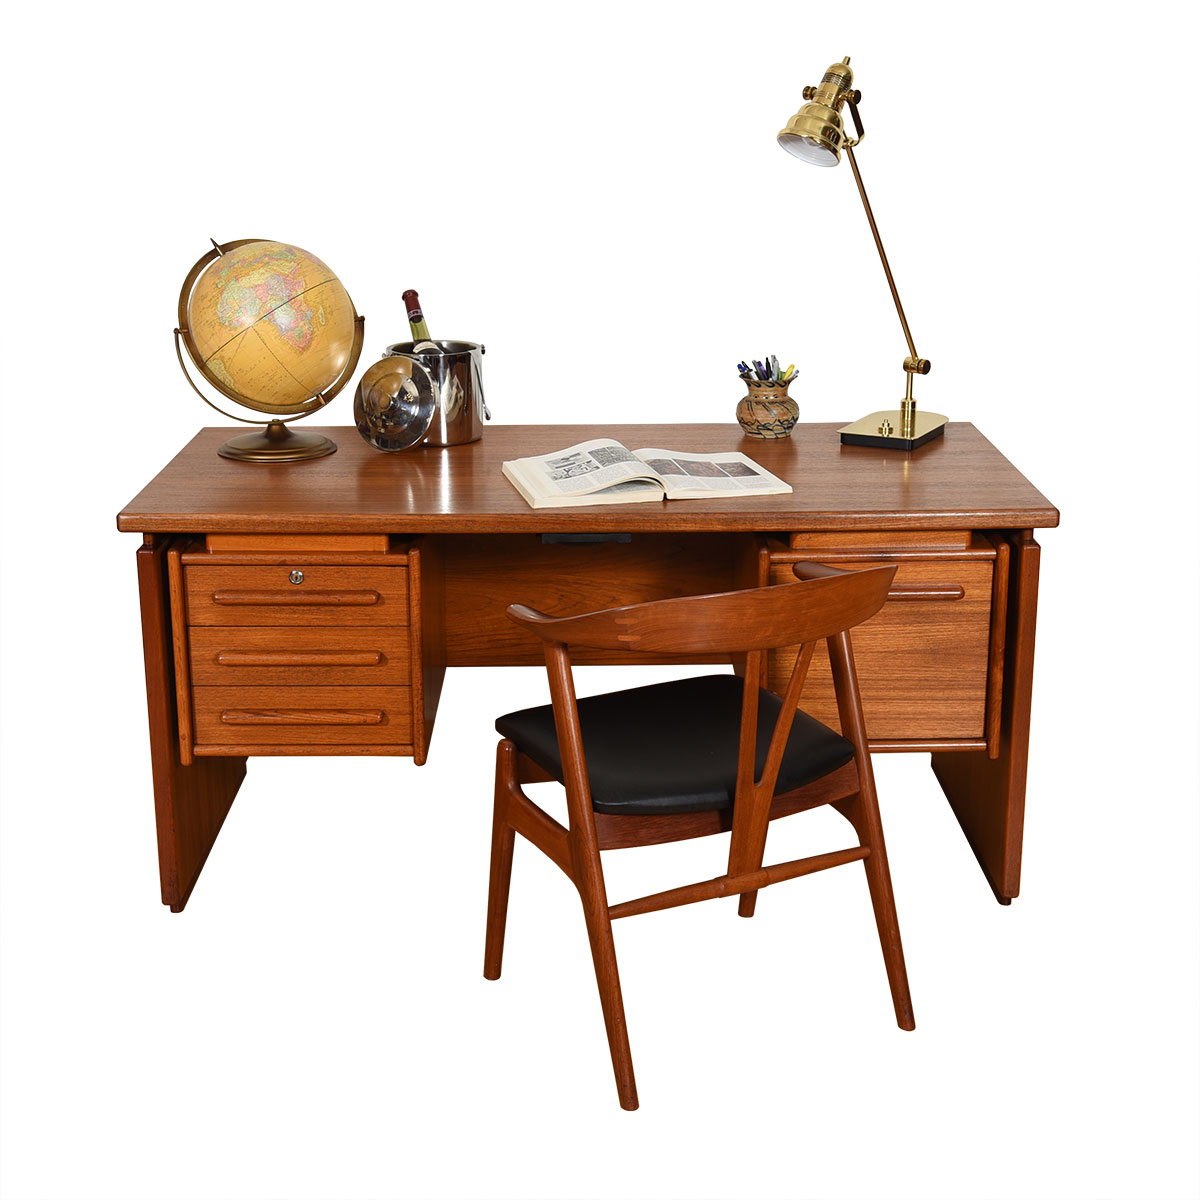 Danish Modern Teak Mid-Sized Floating Top Desk